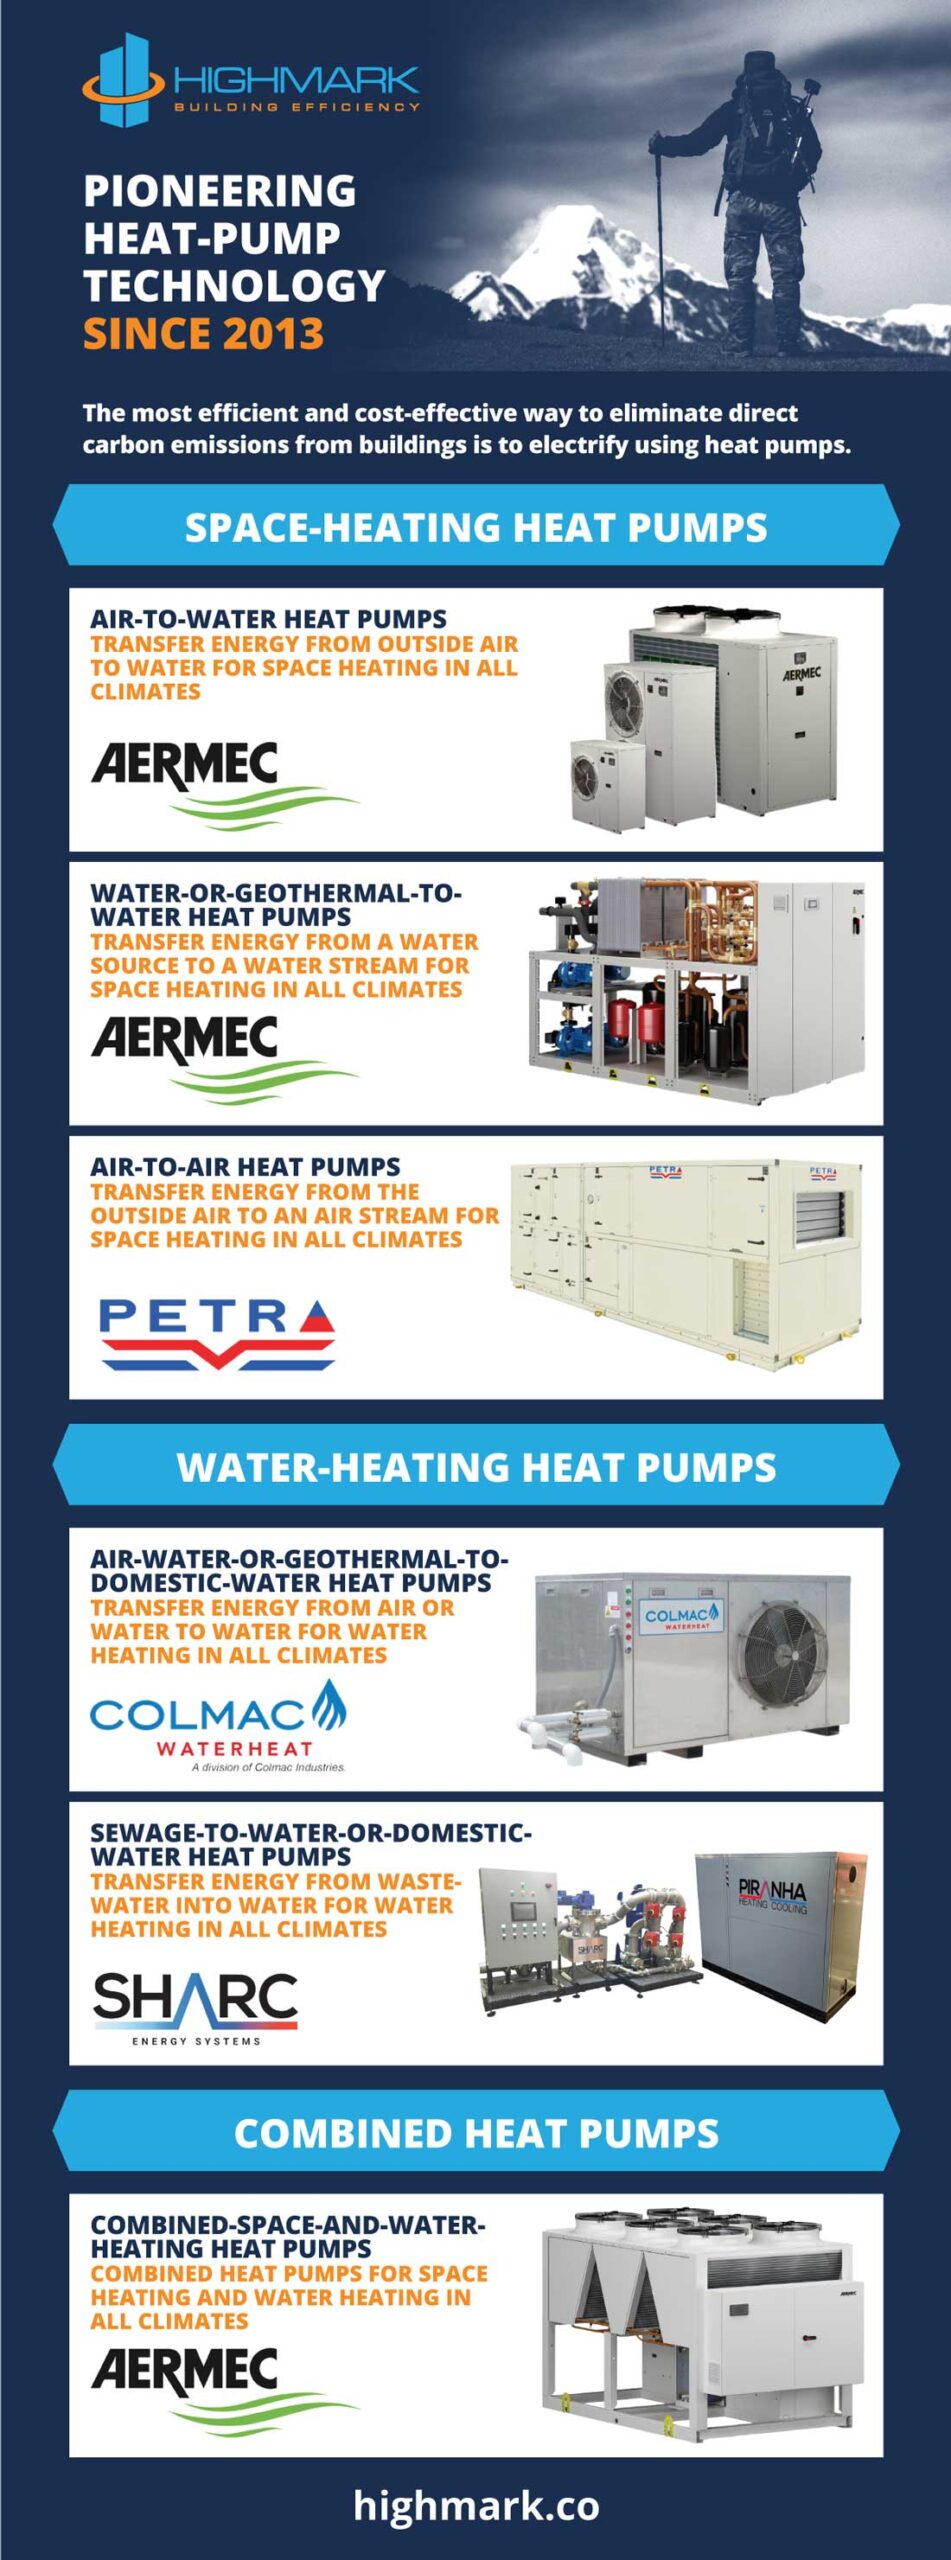 HIGHMARK – Pioneering Heat-Pump Technology Since 2013